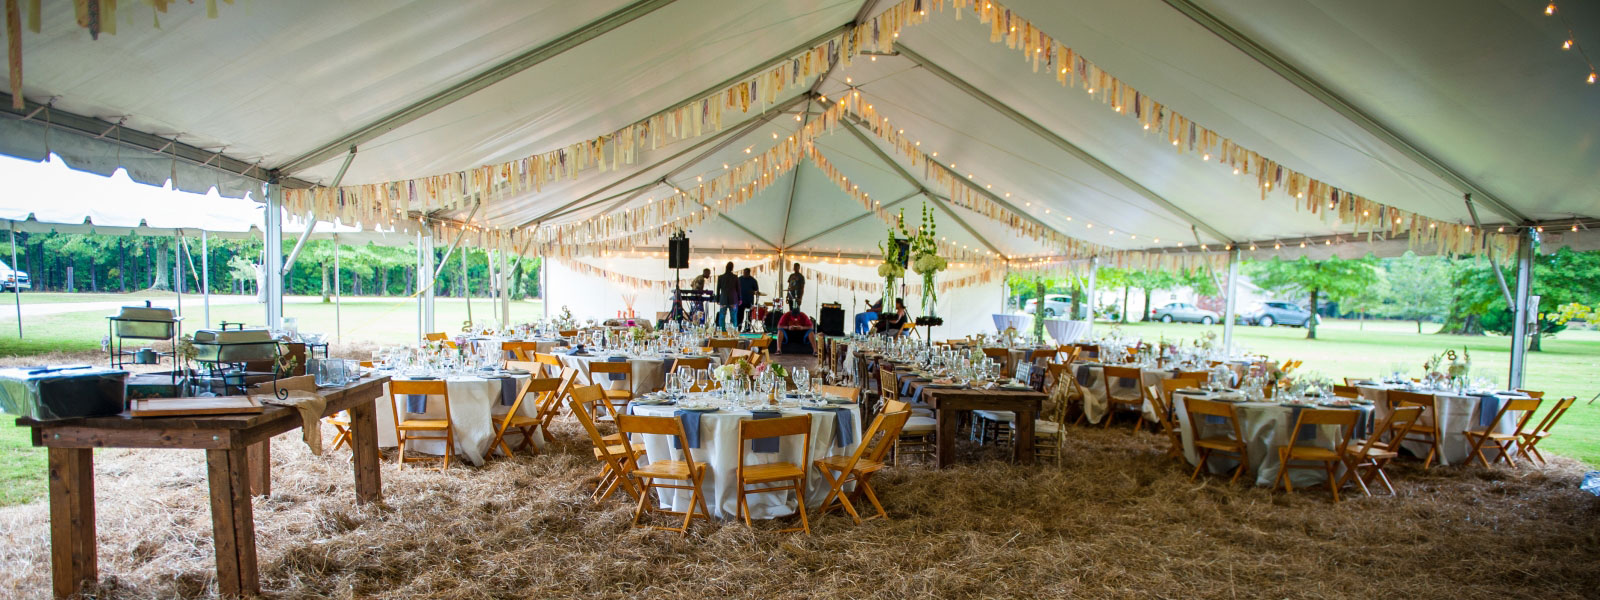 magnoliarental wedding rental Party rentals in North Mississippi